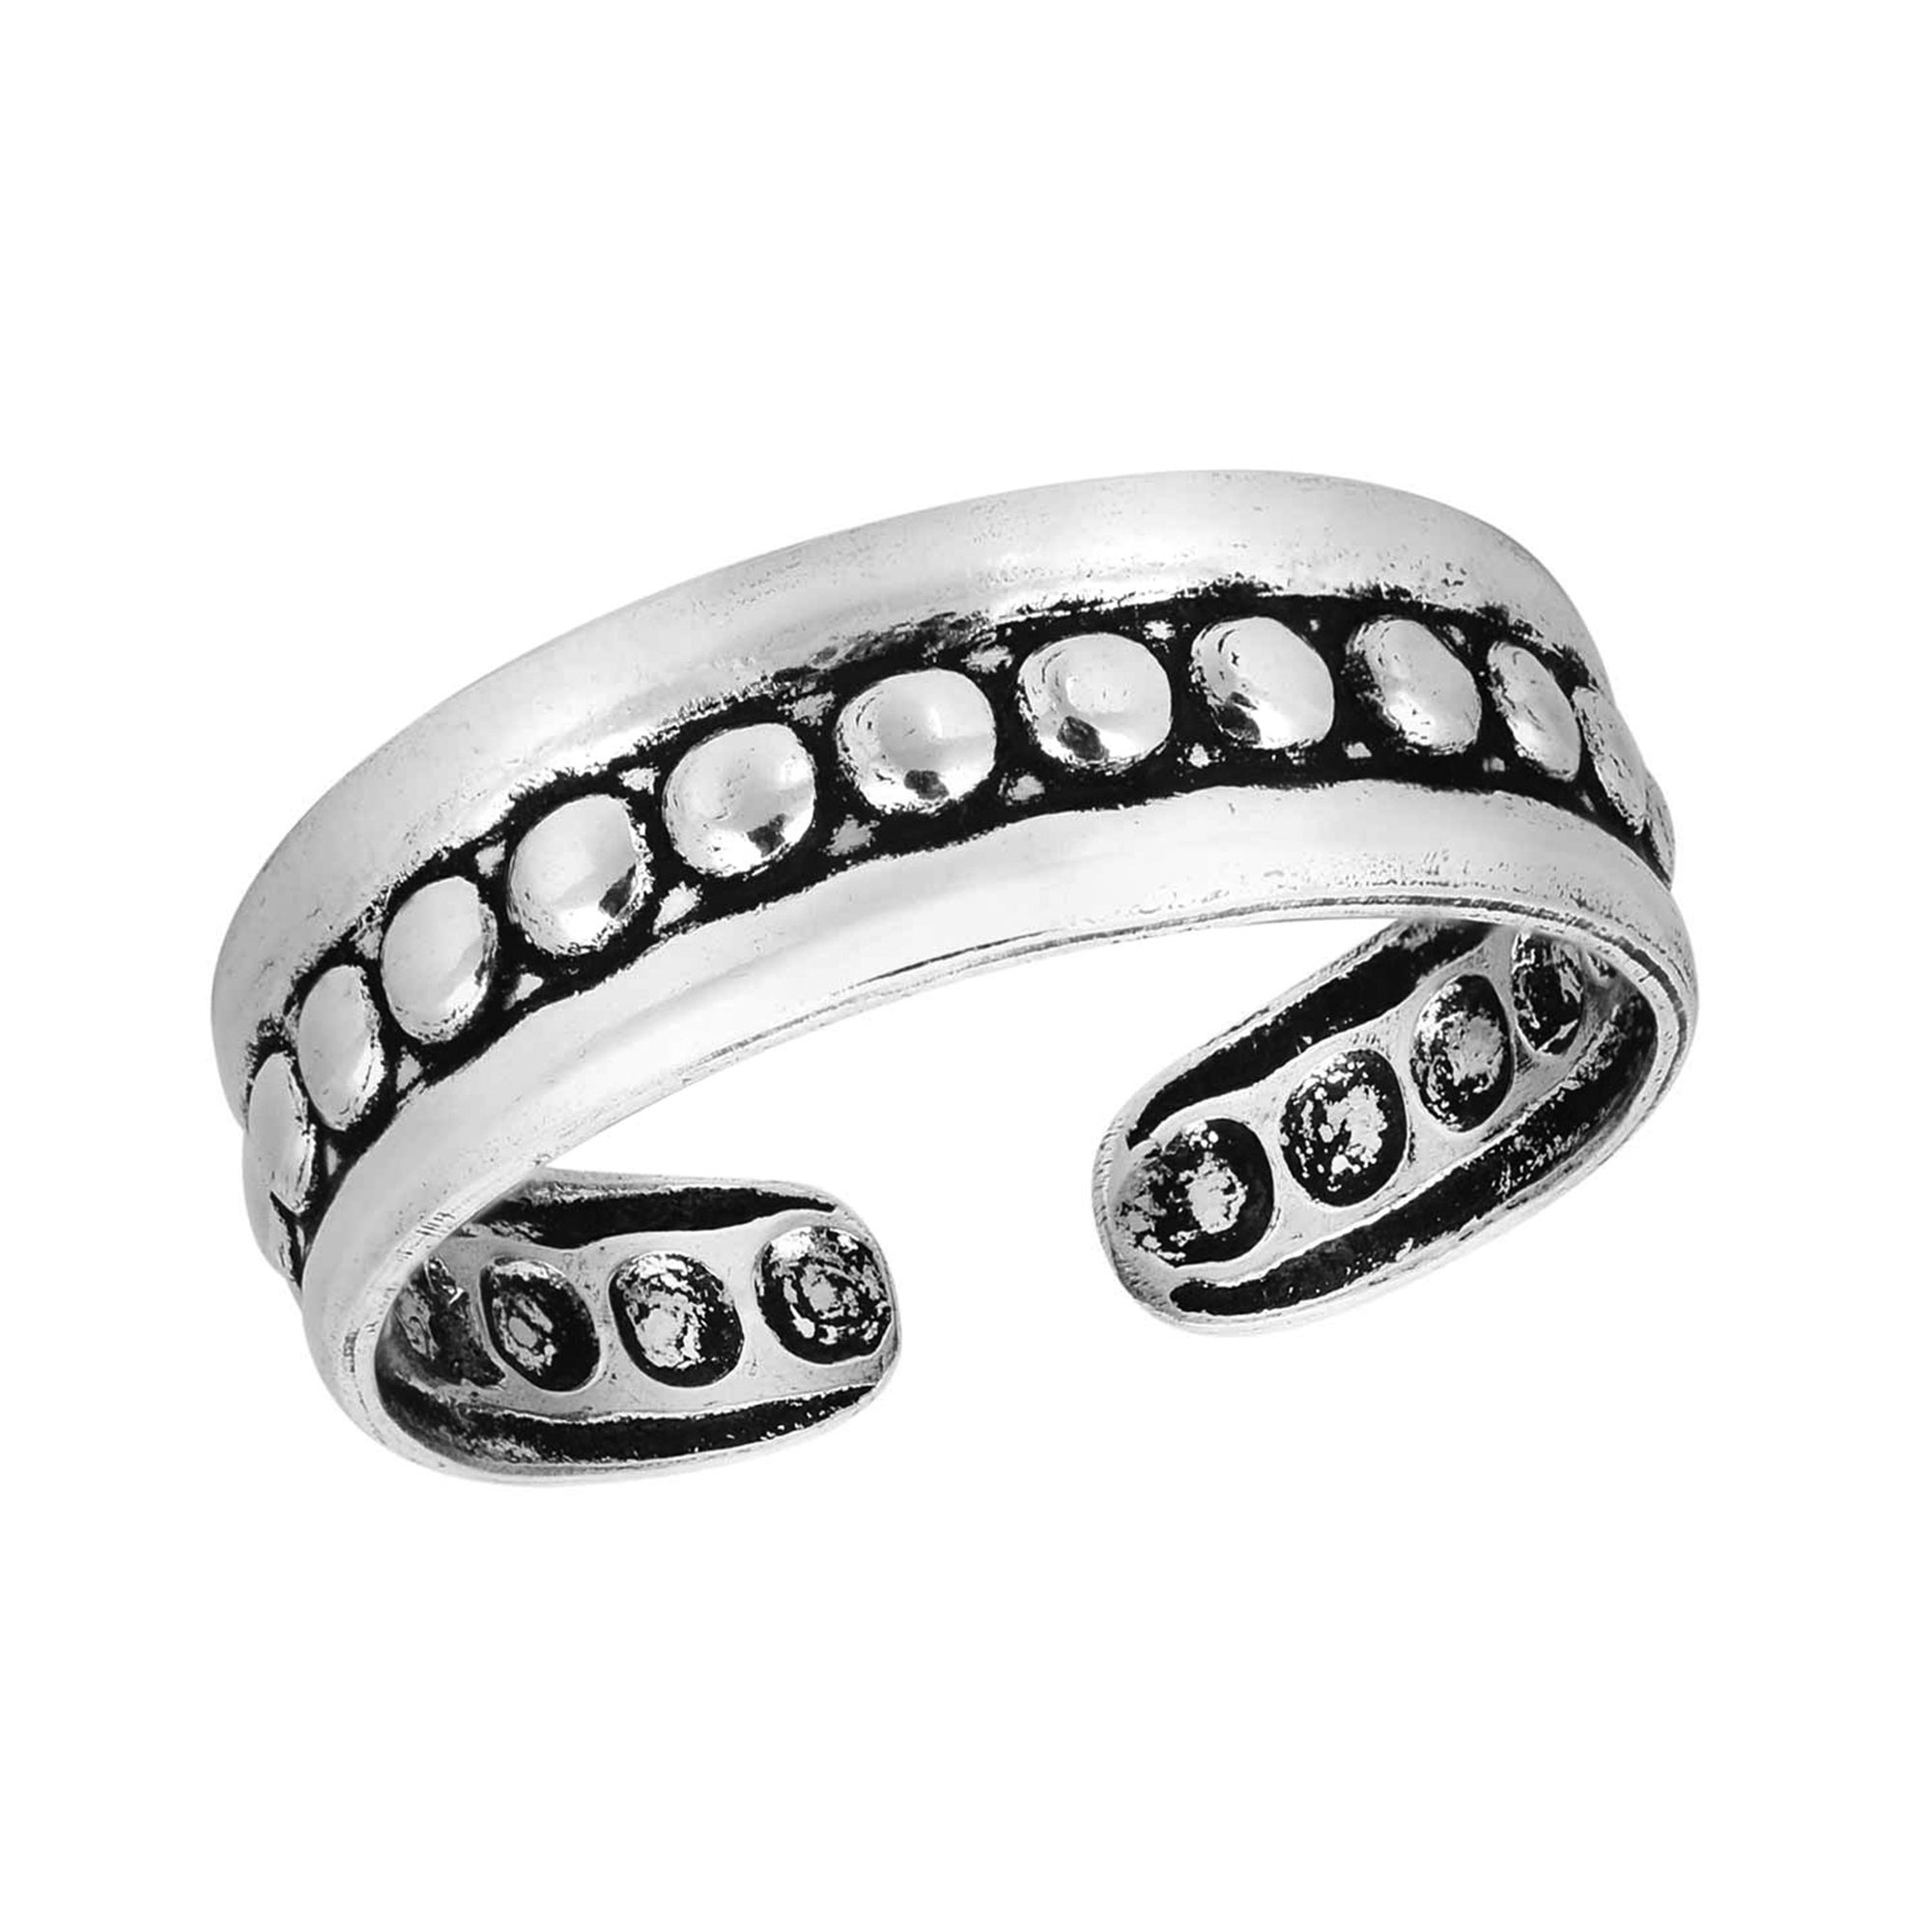 USA Seller Elephant Twins Ring Sterling Silver 925 Best Price Jewelry Selectable